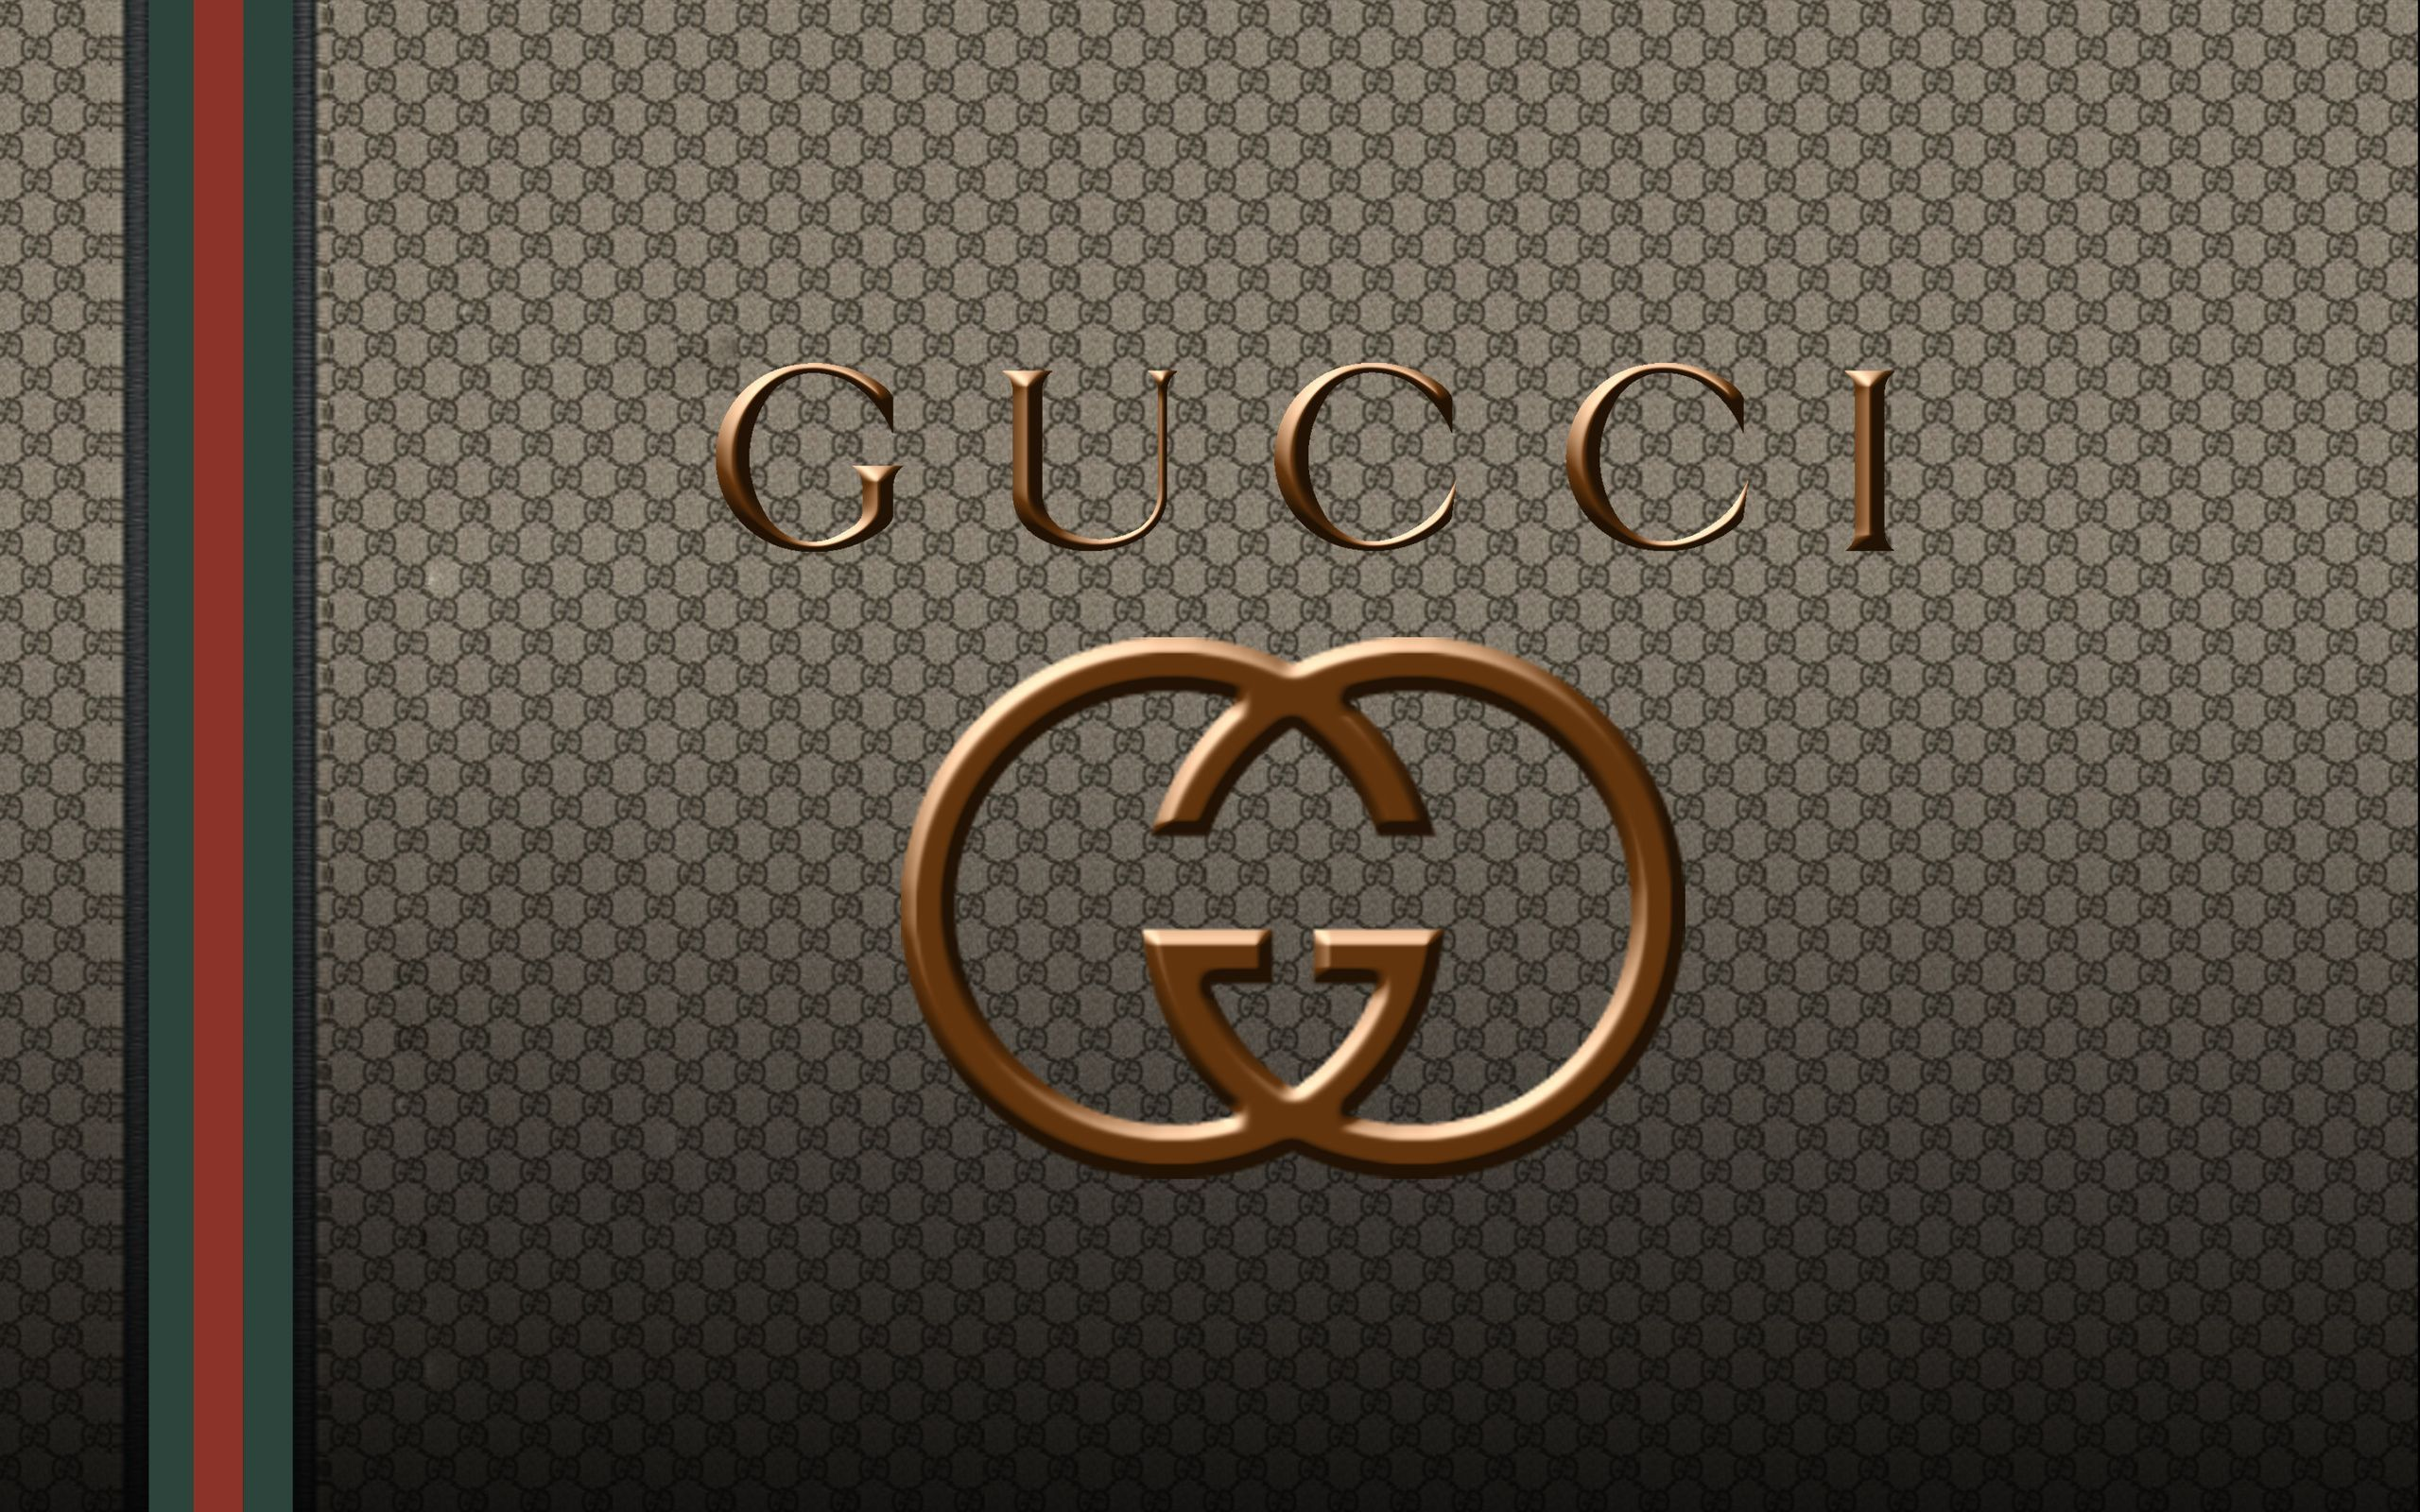 Really Cool Gucci Wallpapers